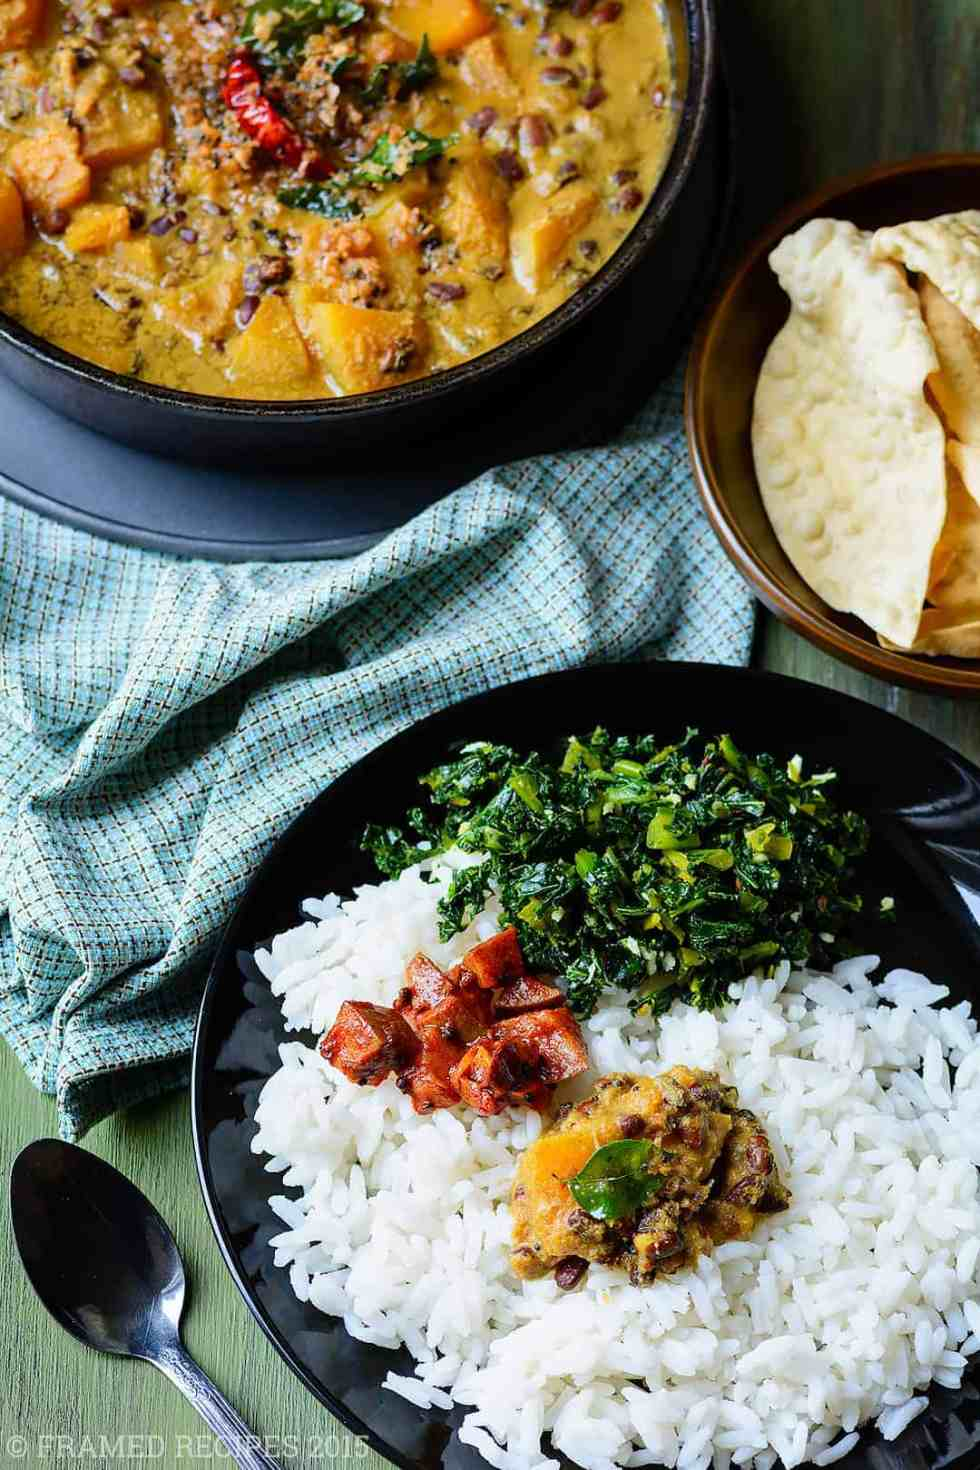 erissery served with steamed rice, kale thoran, pickle, and pappadam.